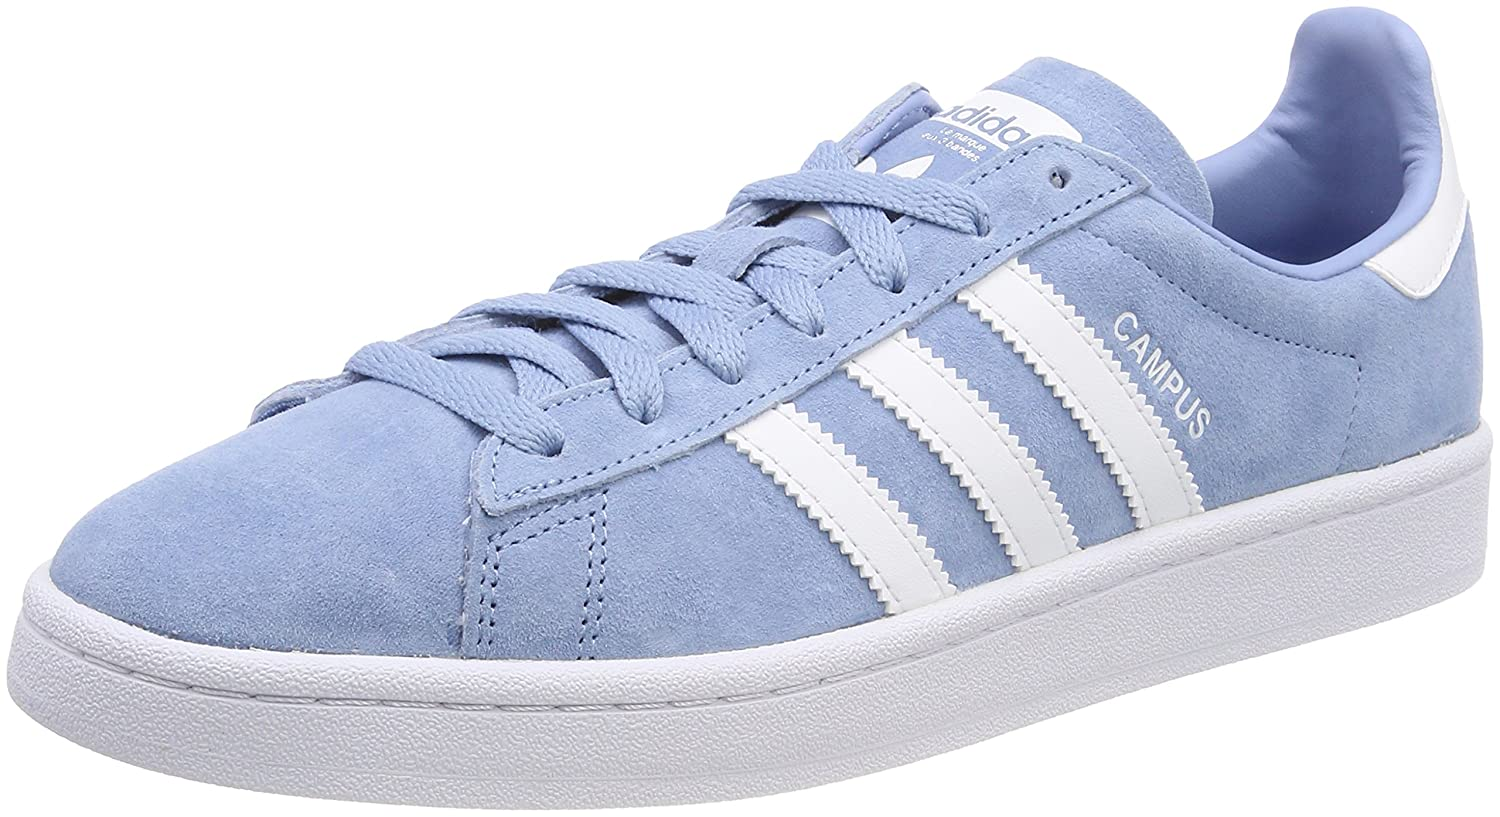 adidas Originals Men's Campus Sneakers B0782119WK 9.5 B(M) US Women / 8.5 D(M) US|Ash Blue/White/White